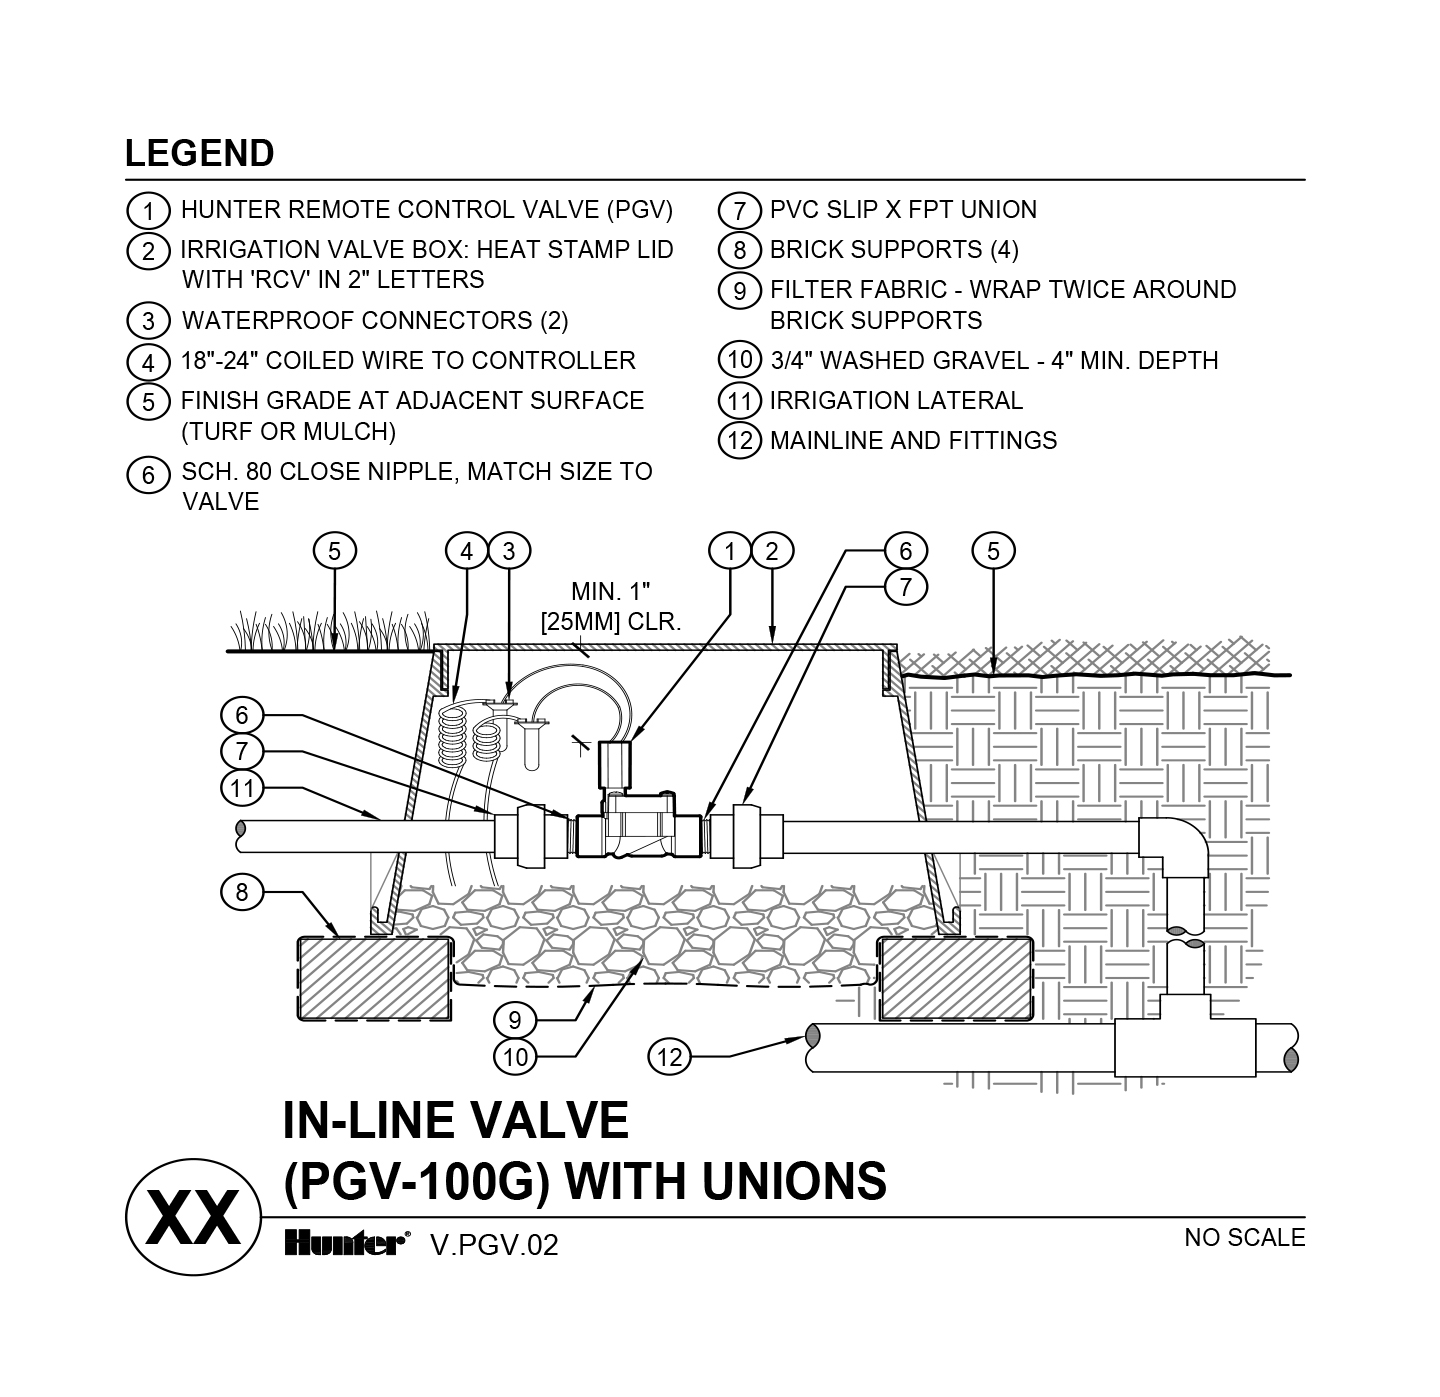 CAD - PGV-100G with unions